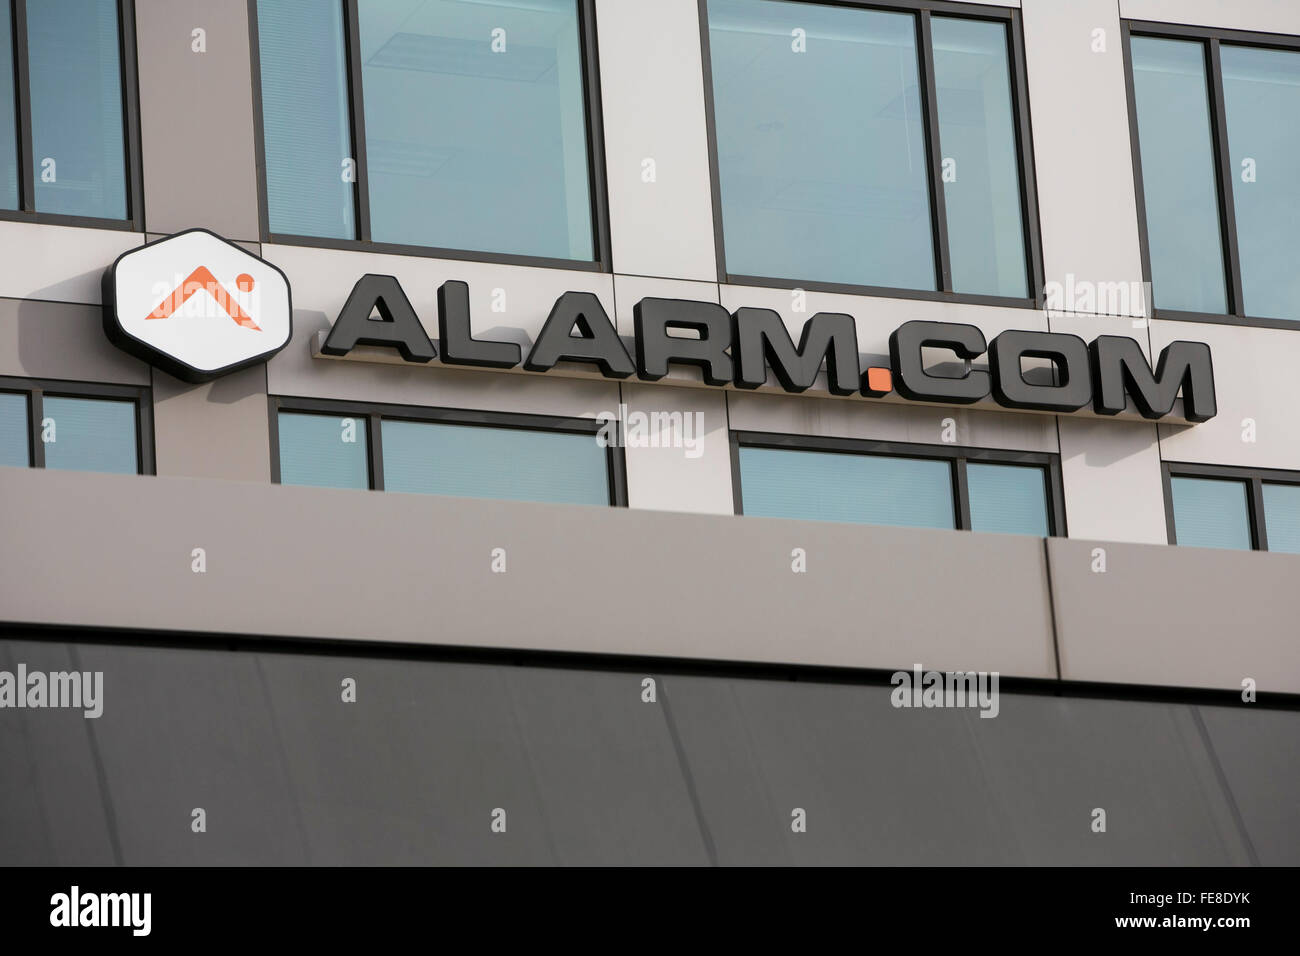 A logo sign outside of the headquarters of Alarm.com, Inc., in Tysons, Virginia on January 1, 2016. - Stock Image